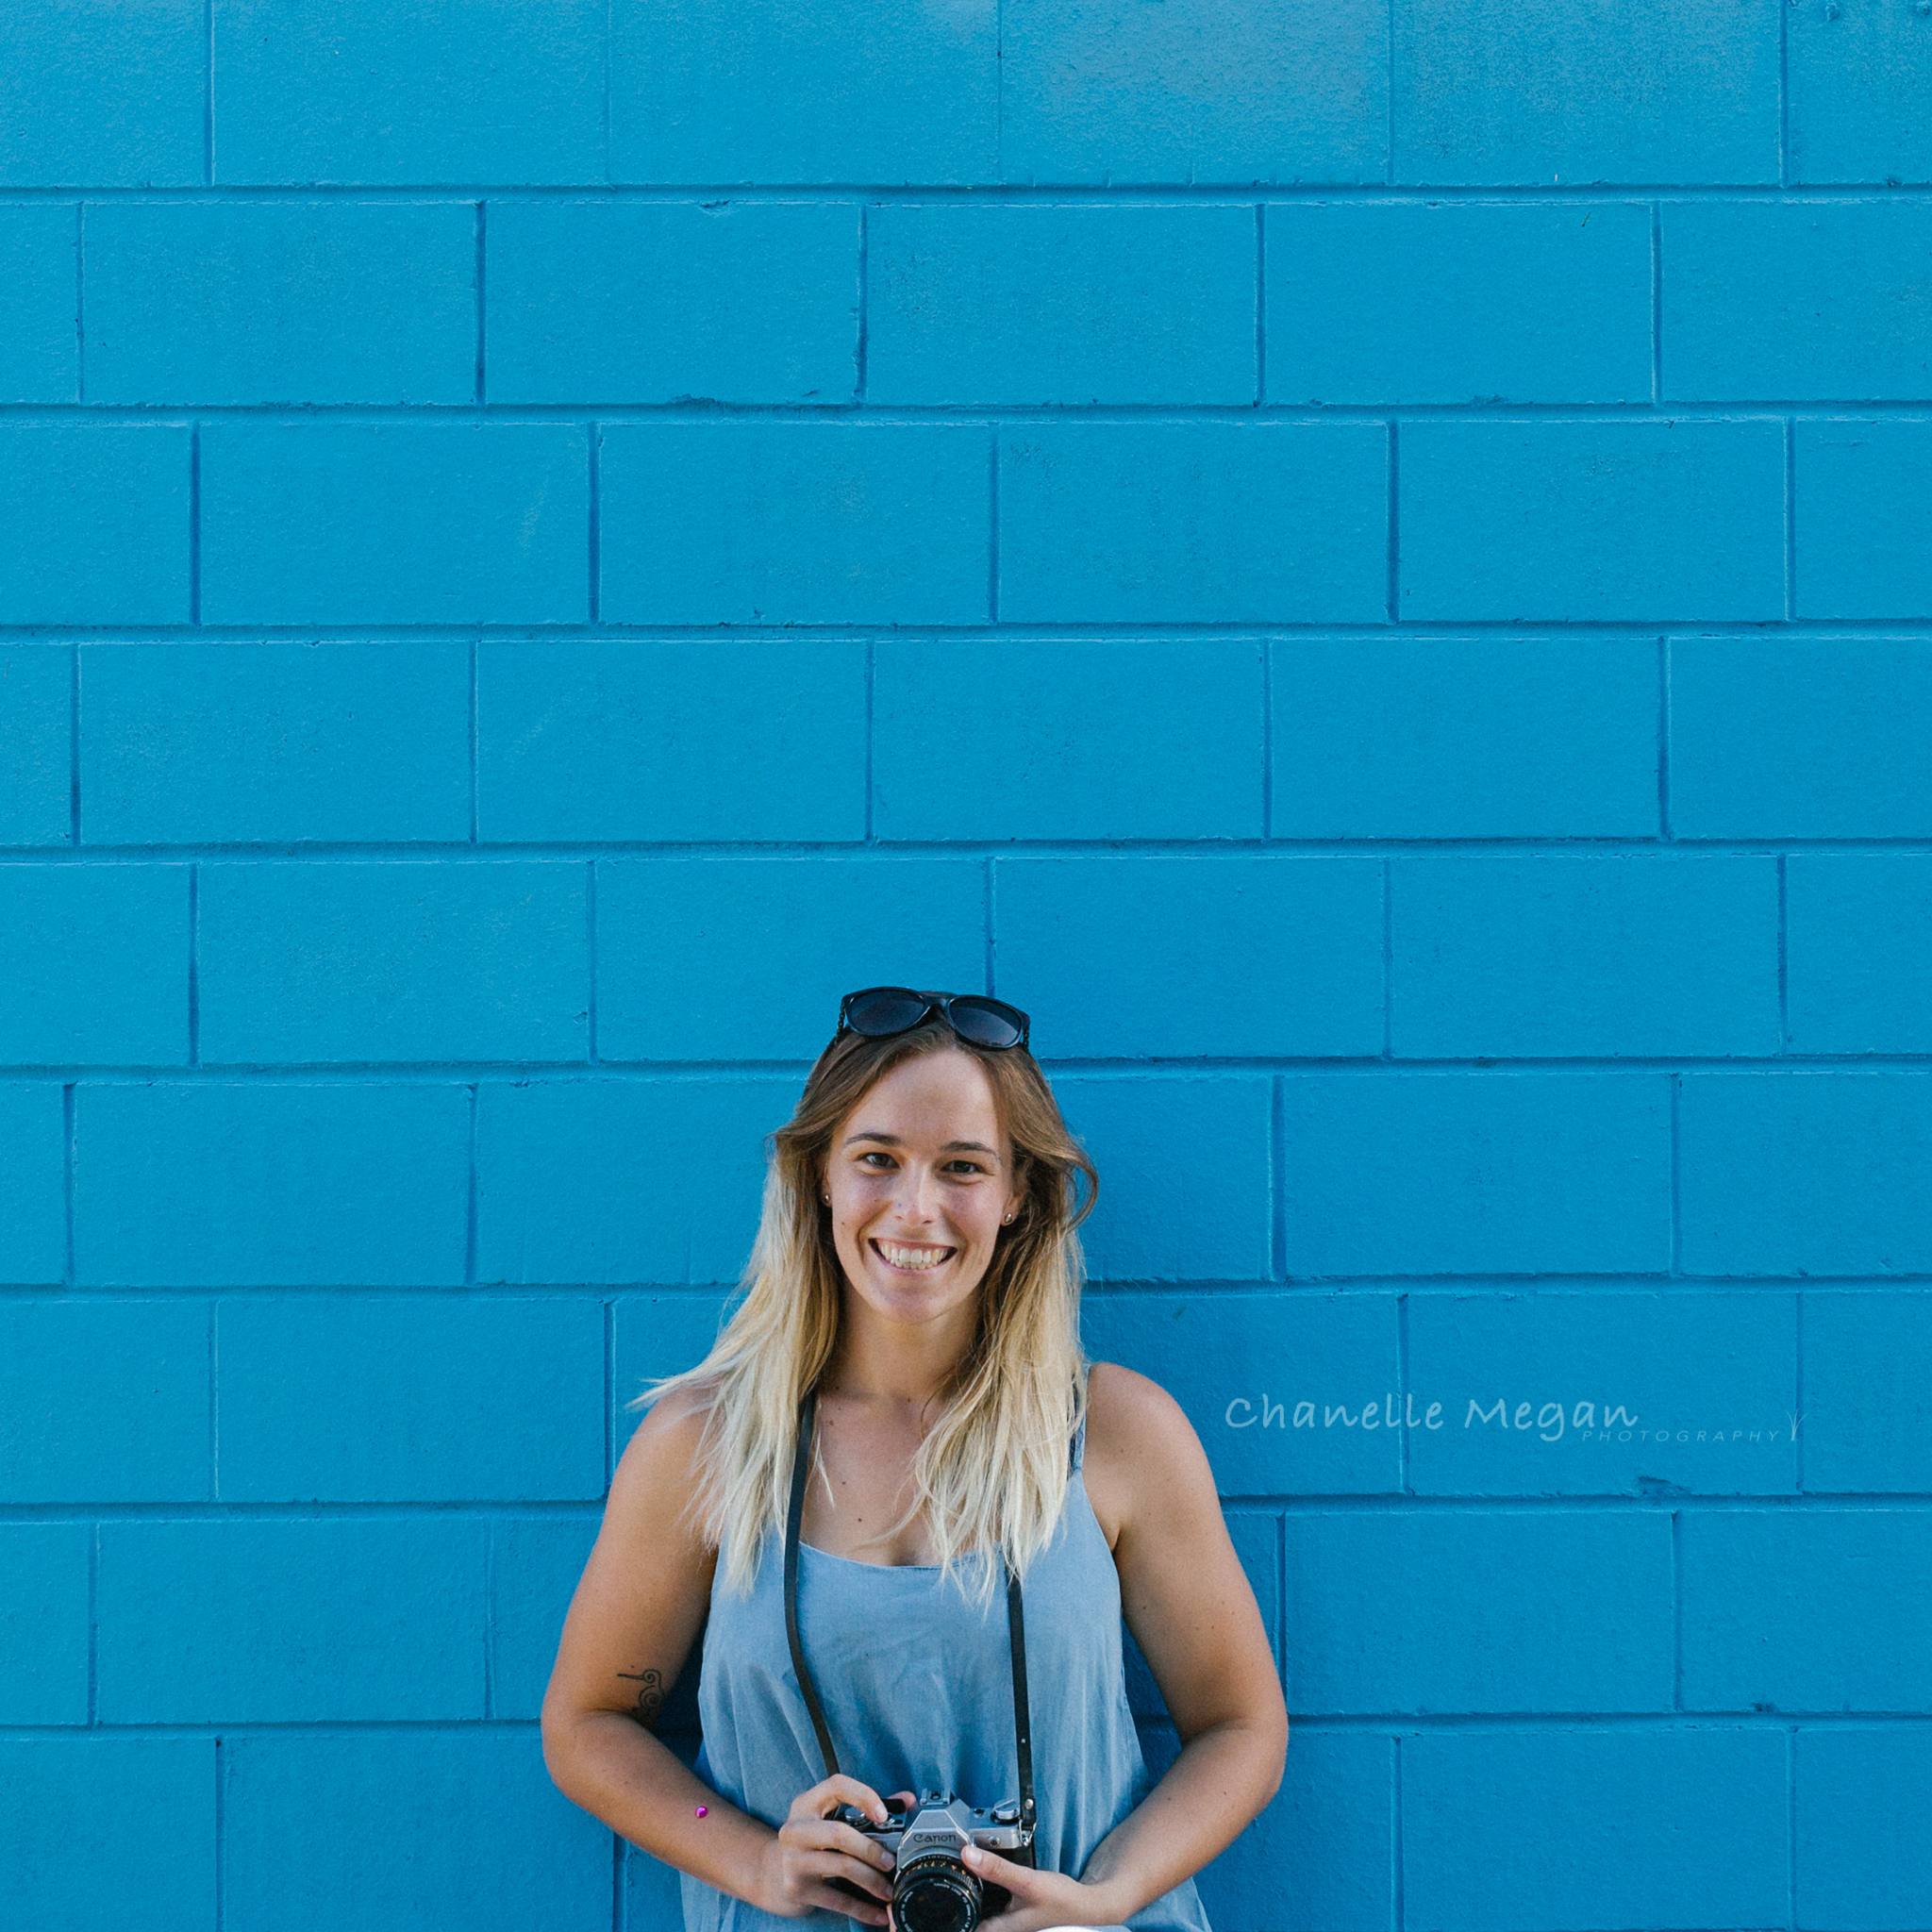 I am Chanelle, the Mama behind the lens at Chanelle Megan Photography